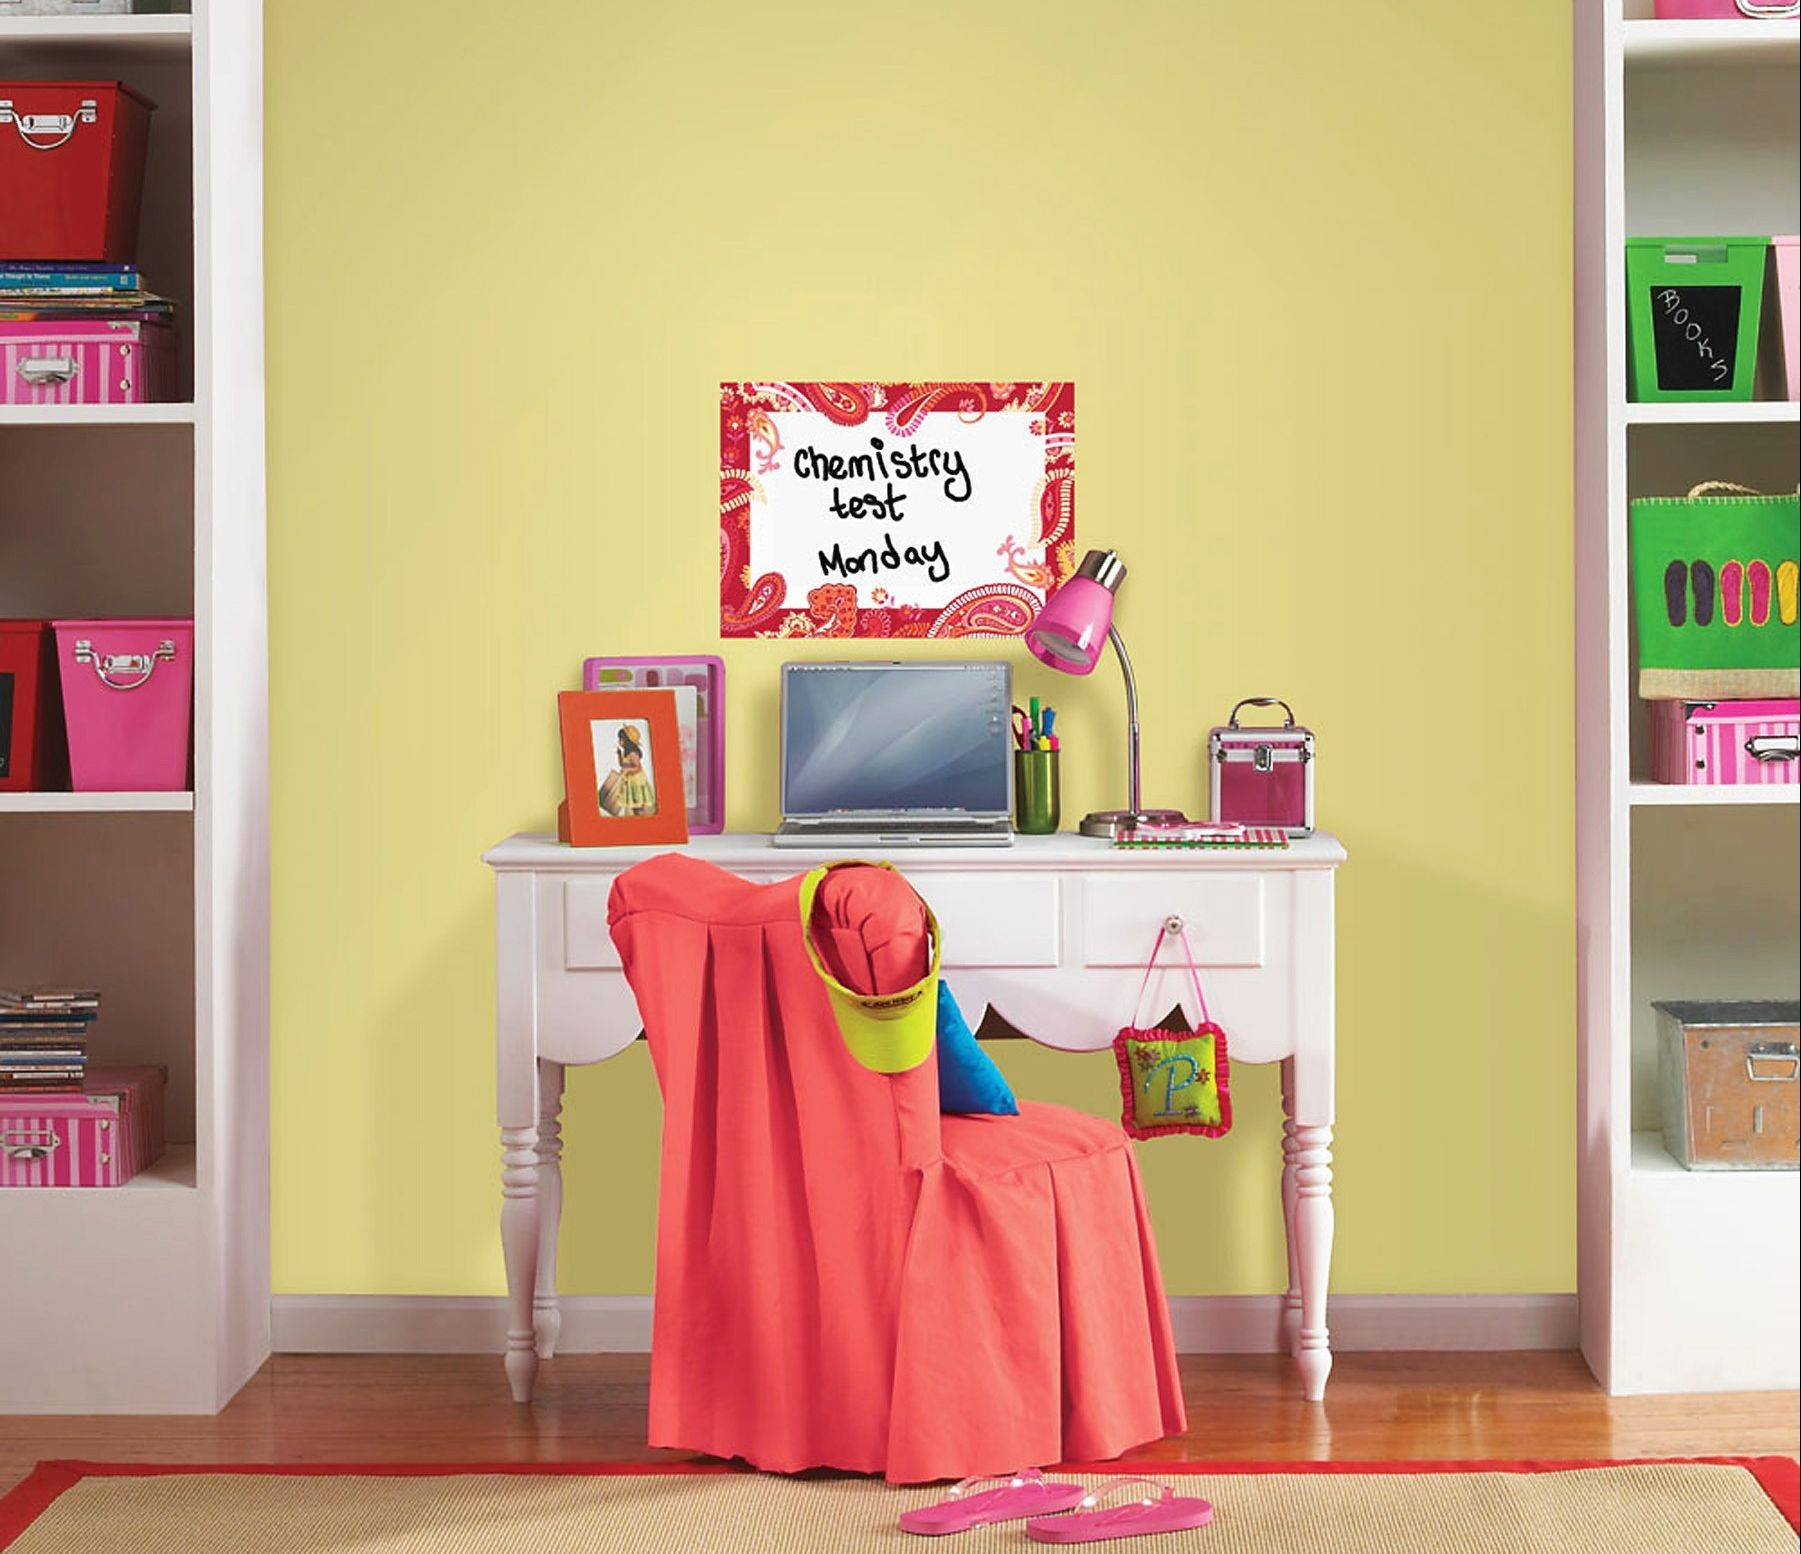 WallPops Paisley Please Red Dry-Erase Message Board can help keep a student's desk area organized.